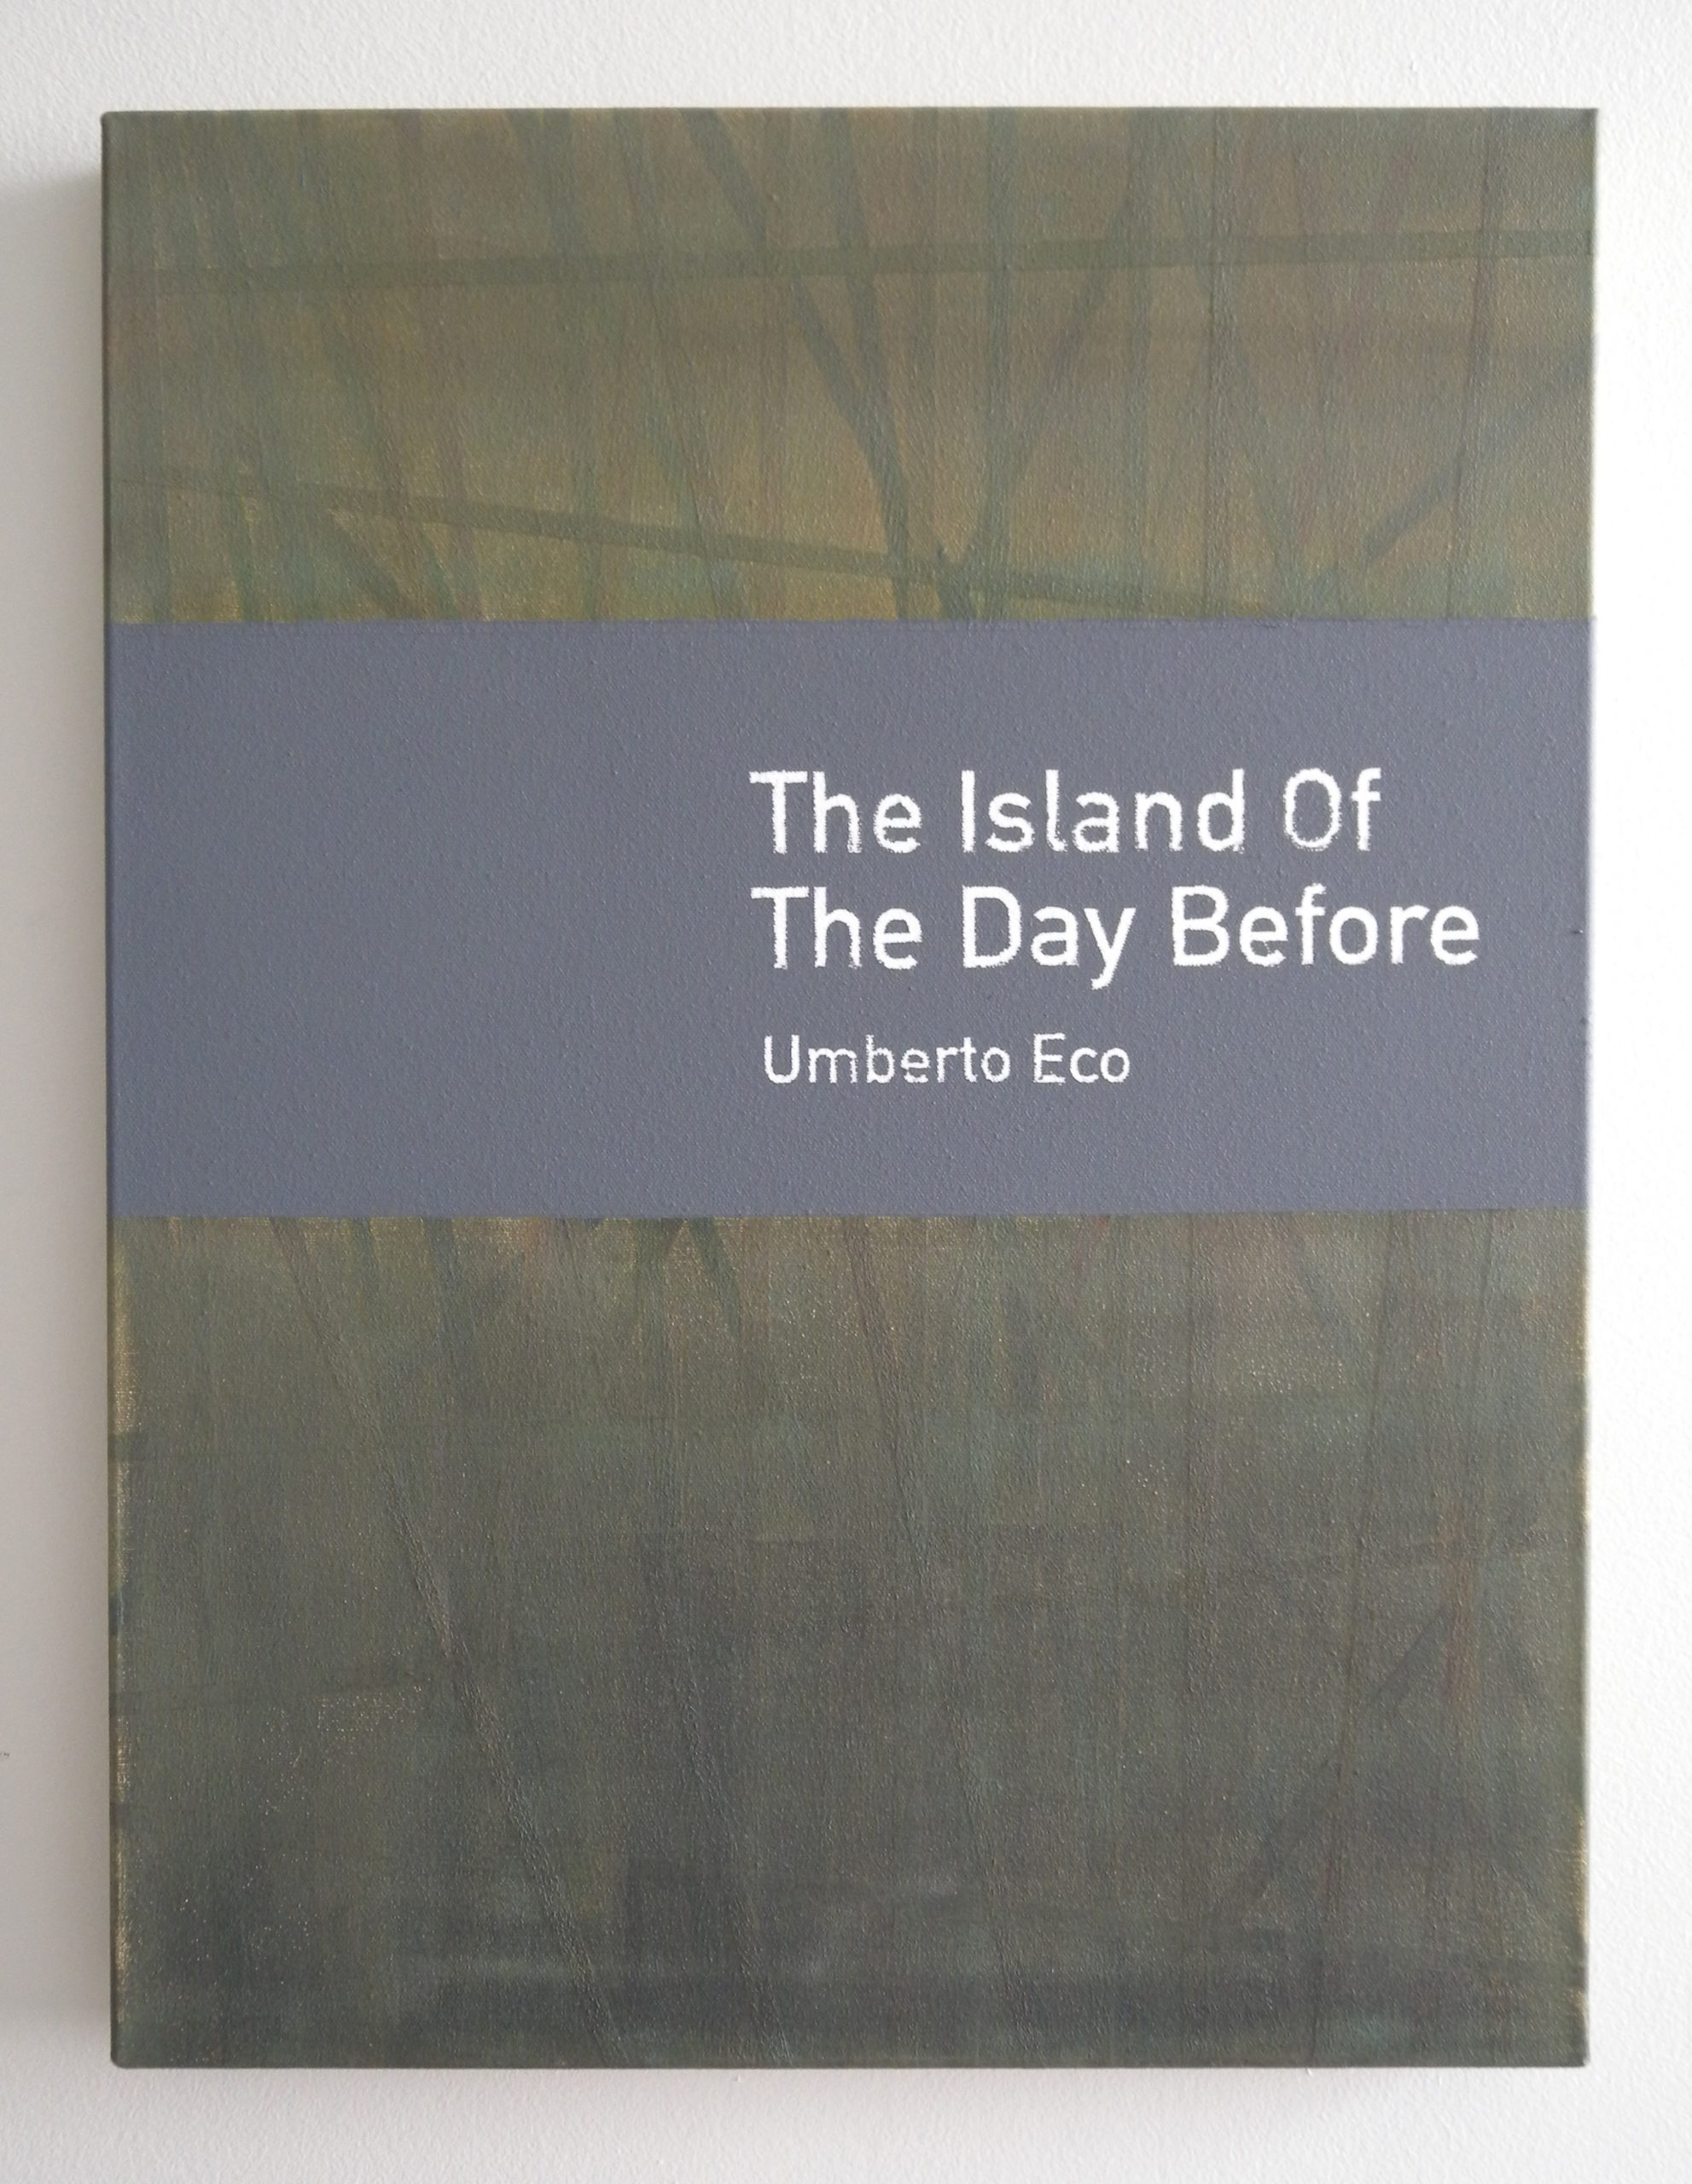 The Island of the Day Before / Umberto Eco